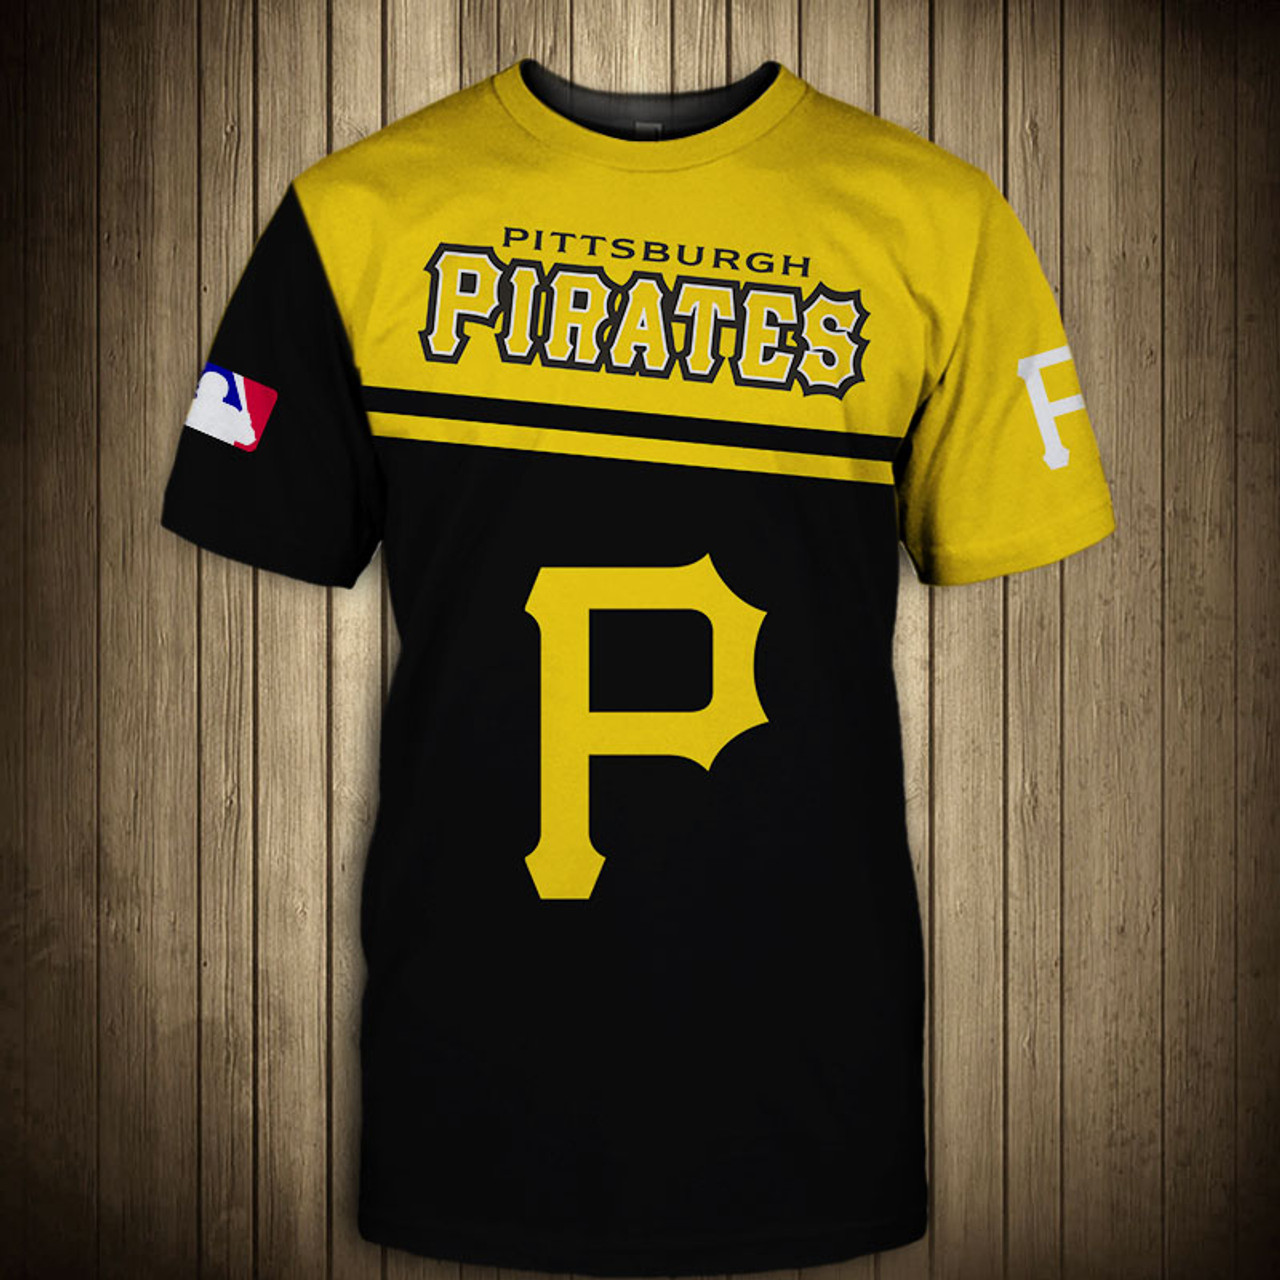 **(OFFICIAL-M.L.B.PITTSBURGH-PIRATES-TEAM-GRAPHIC-TEES/NICE-CUSTOM-DETAILED-3D-GRAPHIC-PRINTED/PREMIUM-ALL-OVER-DOUBLE-SIDED-PRINT/OFFICIAL-PIRATES-TEAM-COLORS & CLASSIC-PIRATES-3D-GRAPHIC-LOGOS/TRENDY-NEW-PREMIUM-M.L.B.PIRATES-TEES)**